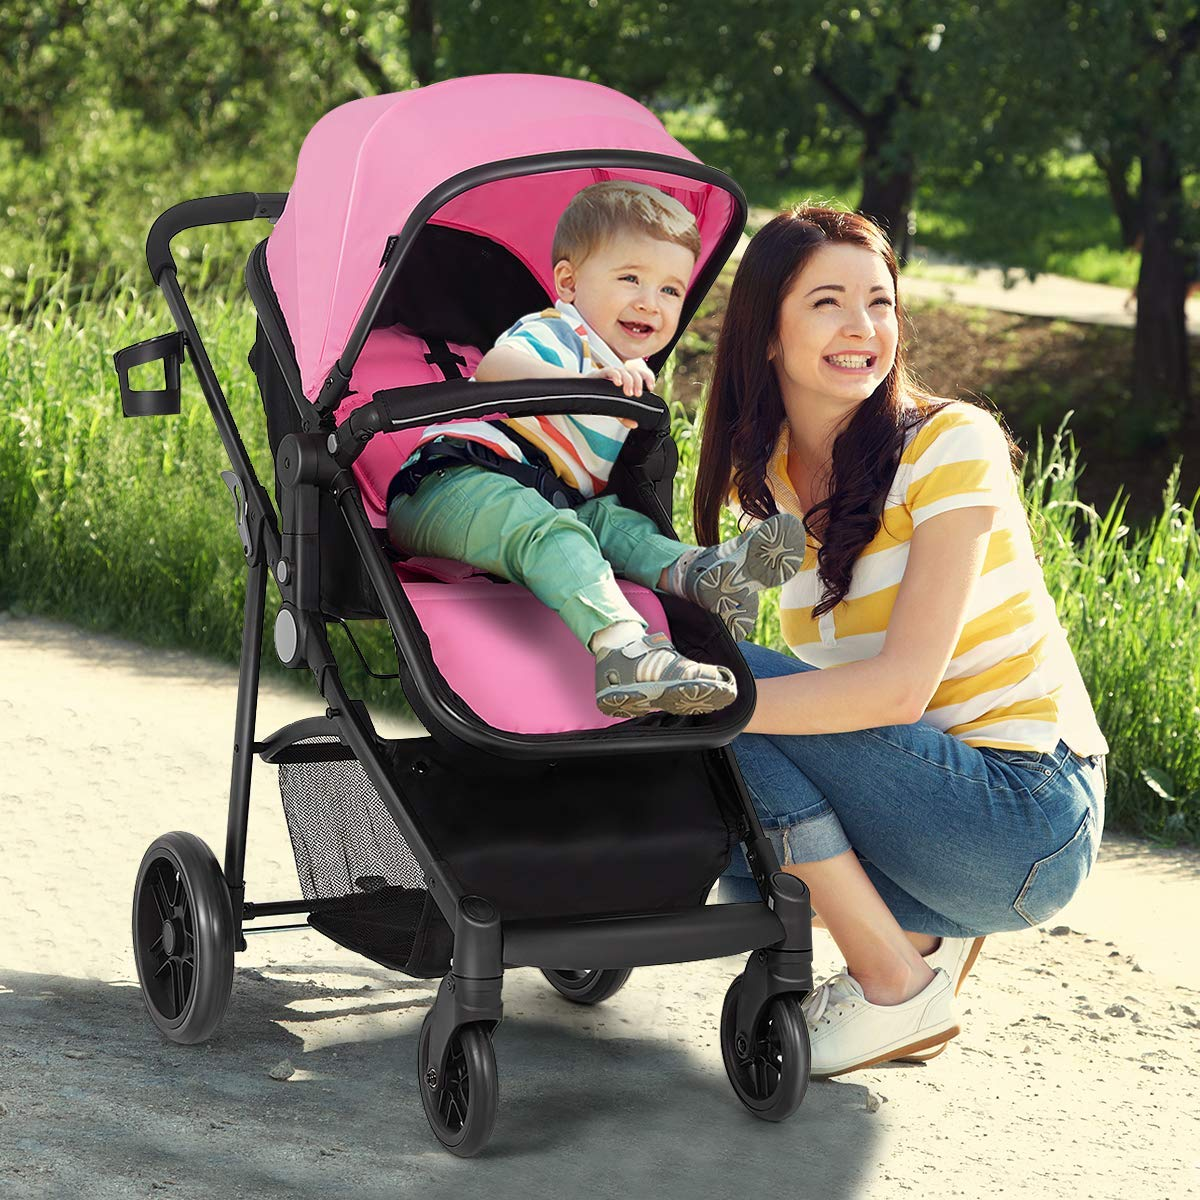 Costzon Baby Stroller, 2 in 1 Convertible Carriage Bassinet to Stroller, Pushchair with Foot Cover, Cup Holder, Large Storage Space, Wheels Suspension, 5-Point Harness (Pink Color) by Costzon (Image #3)